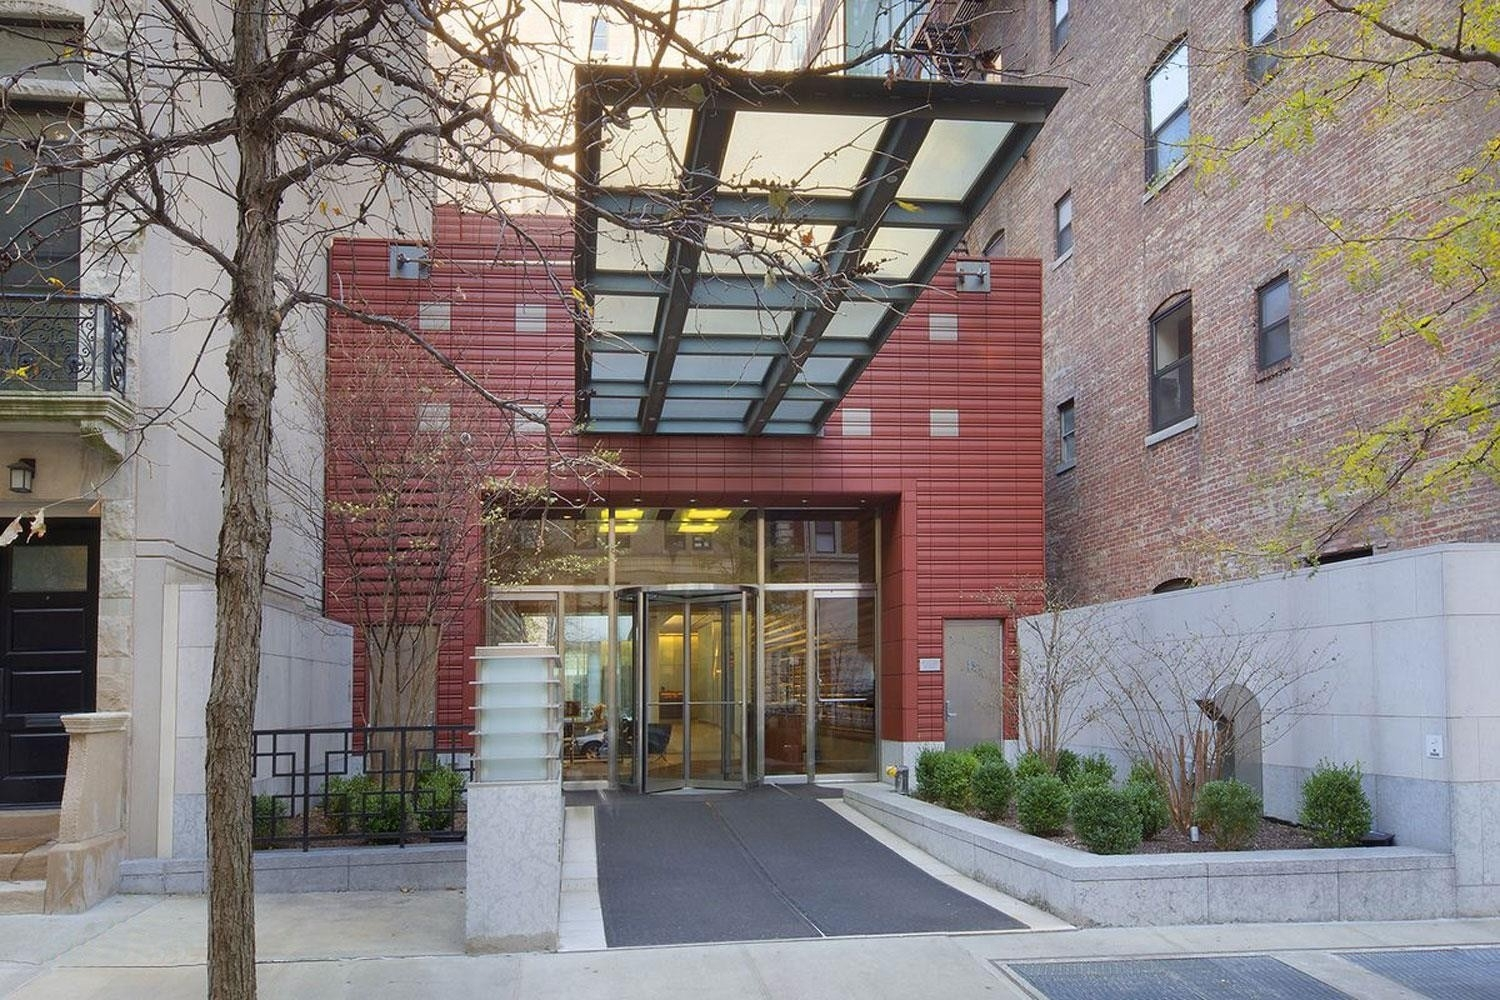 7. ARIEL WEST bâtiment à 245 West 99th St, Upper Manhattan, New York, NY